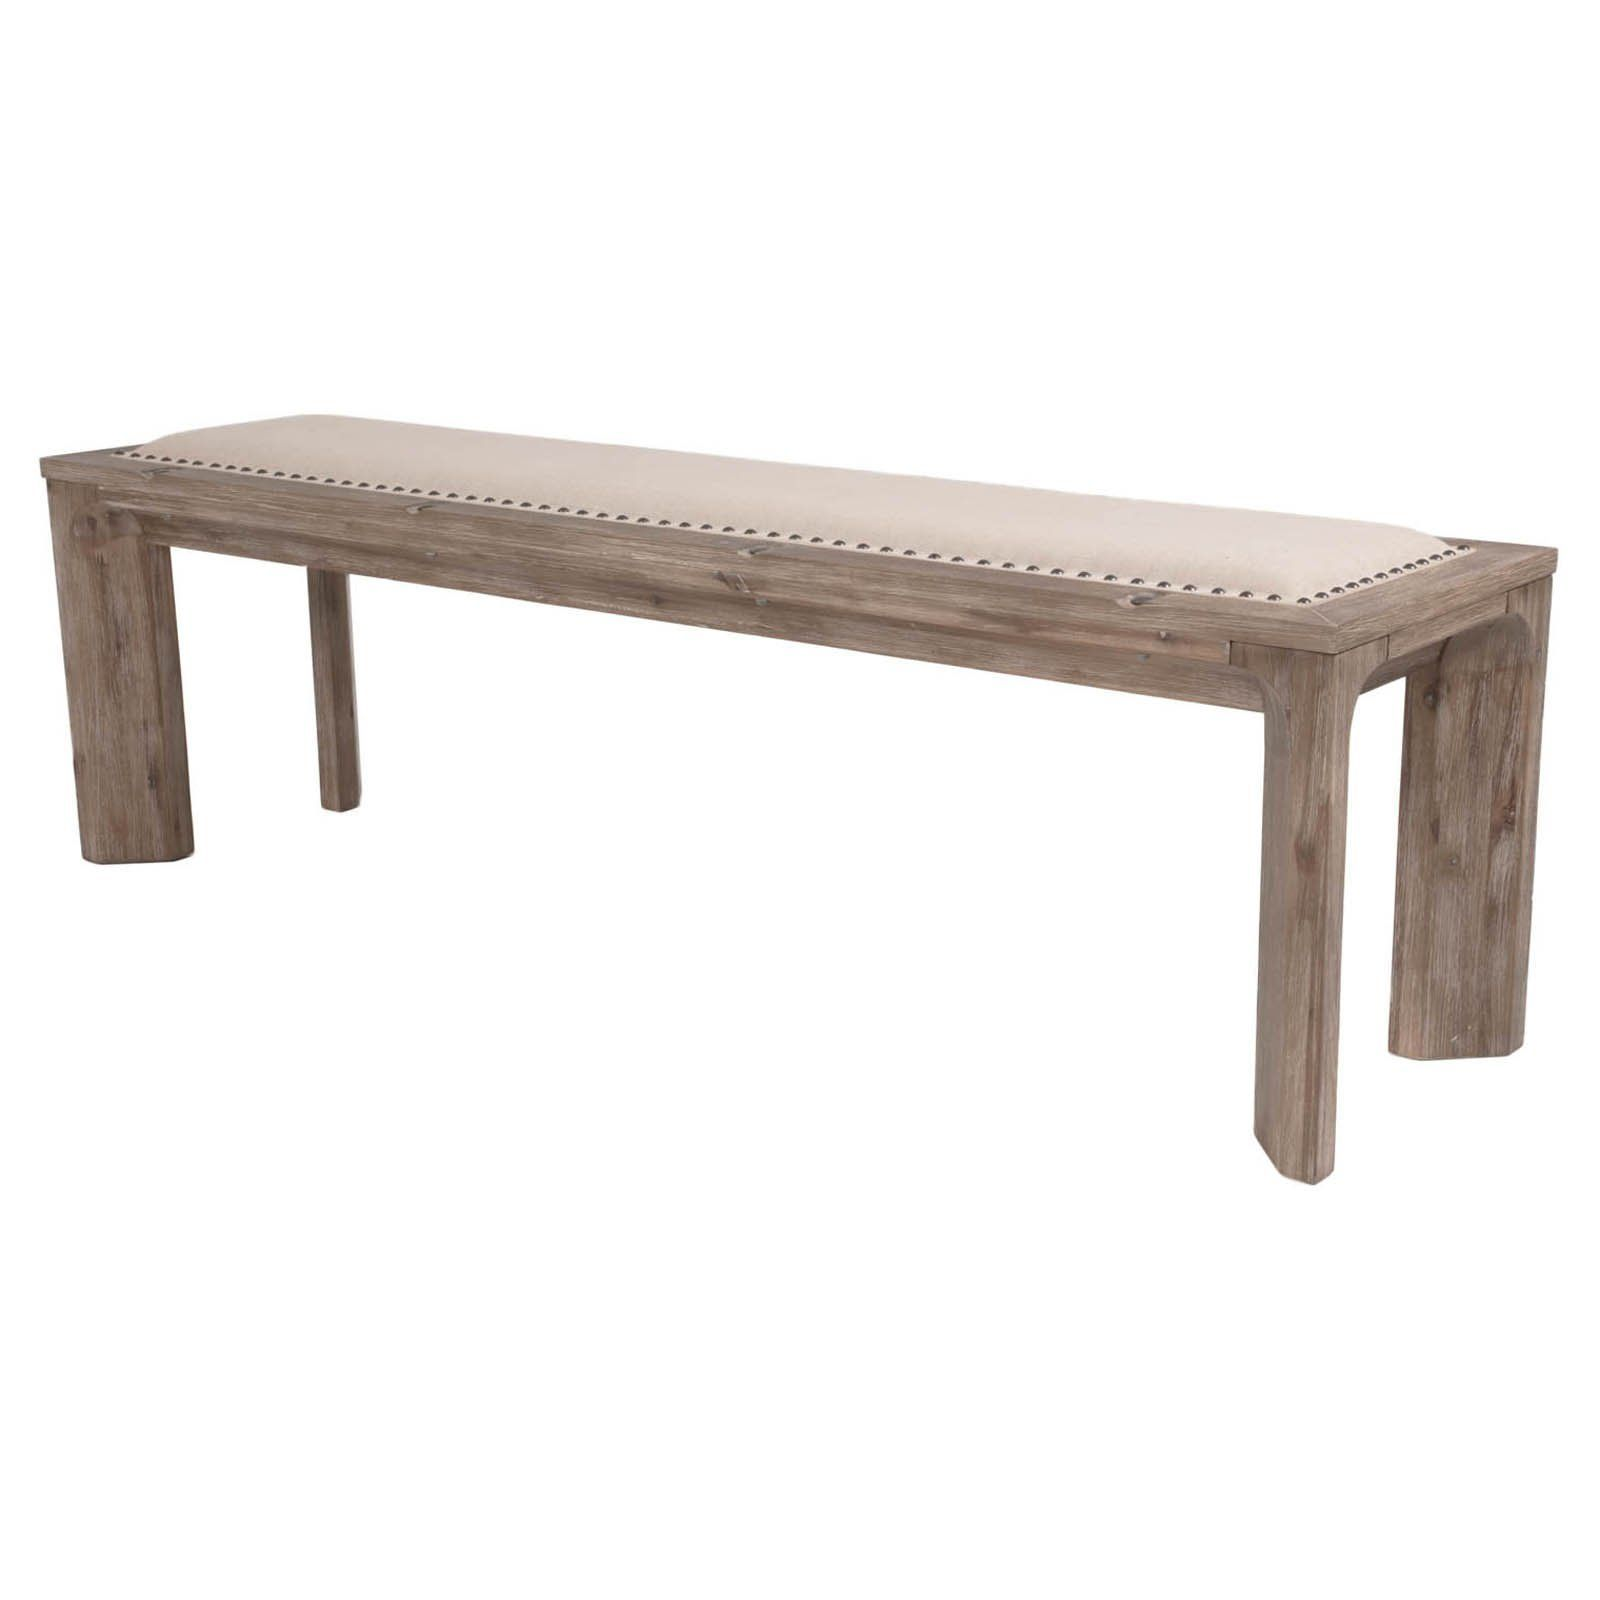 Magnificent Orient Express Furniture Traditions Rivet Dining Bench Dailytribune Chair Design For Home Dailytribuneorg